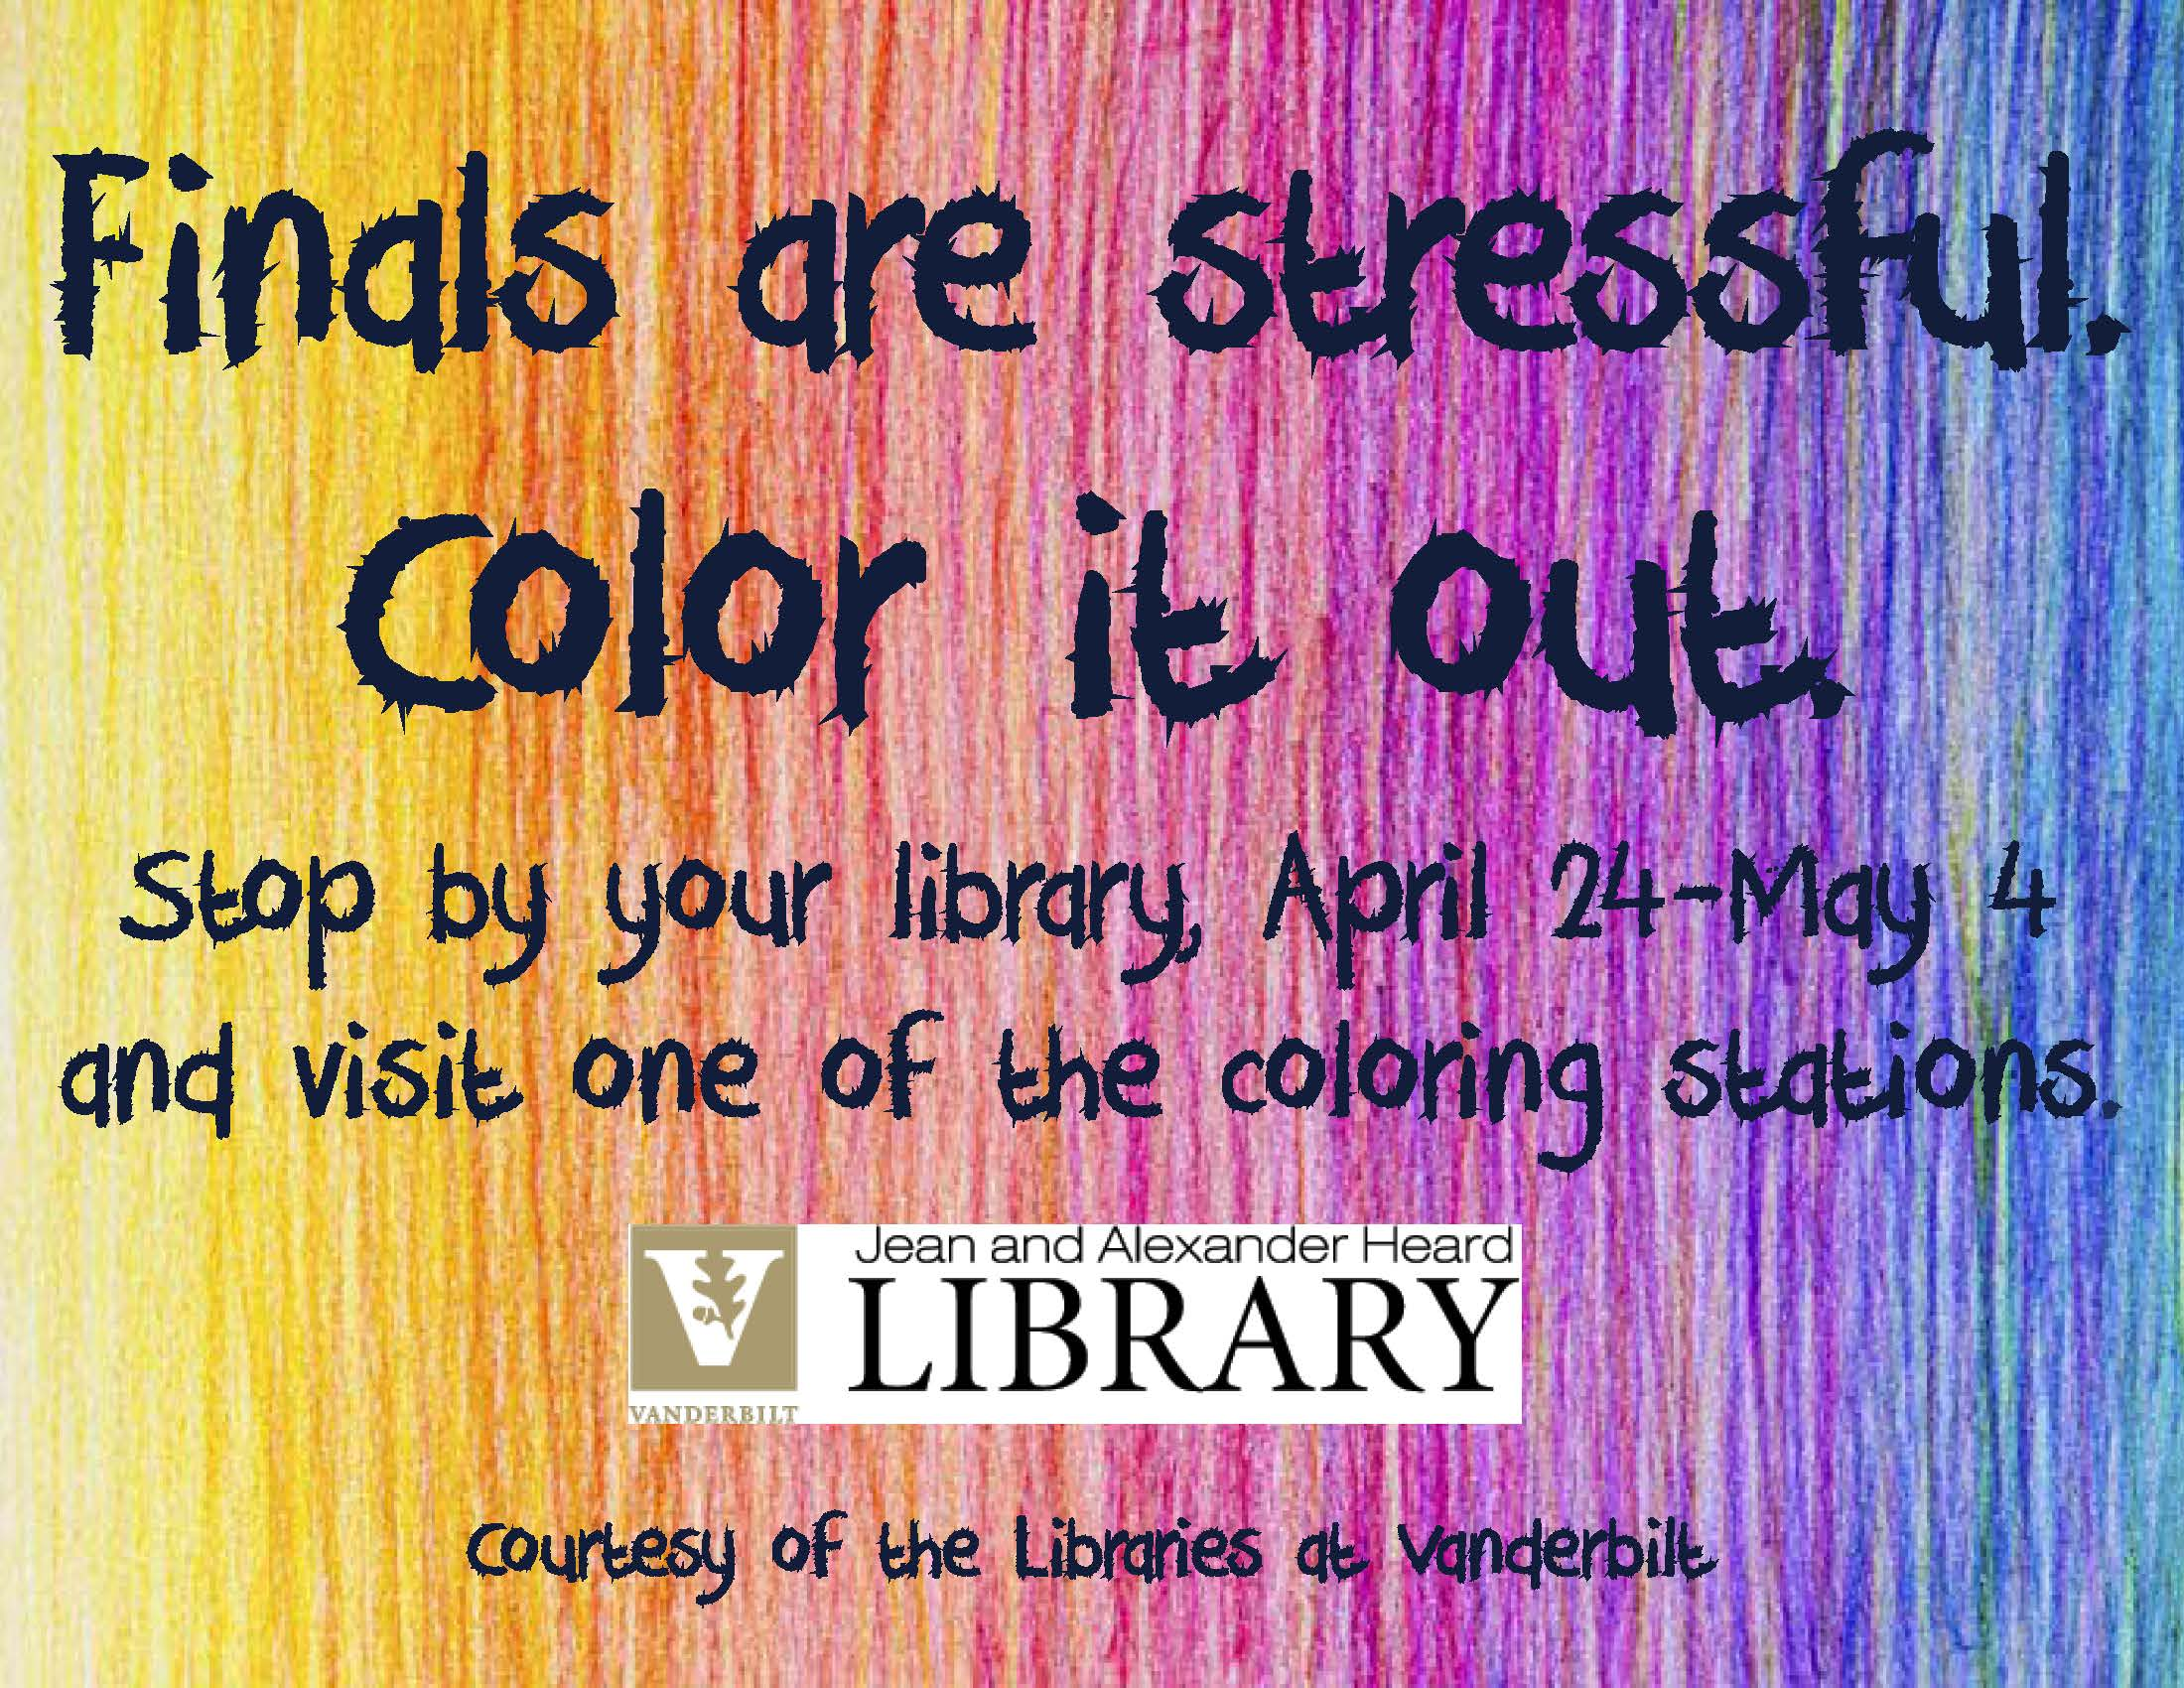 Coloring in the Library!